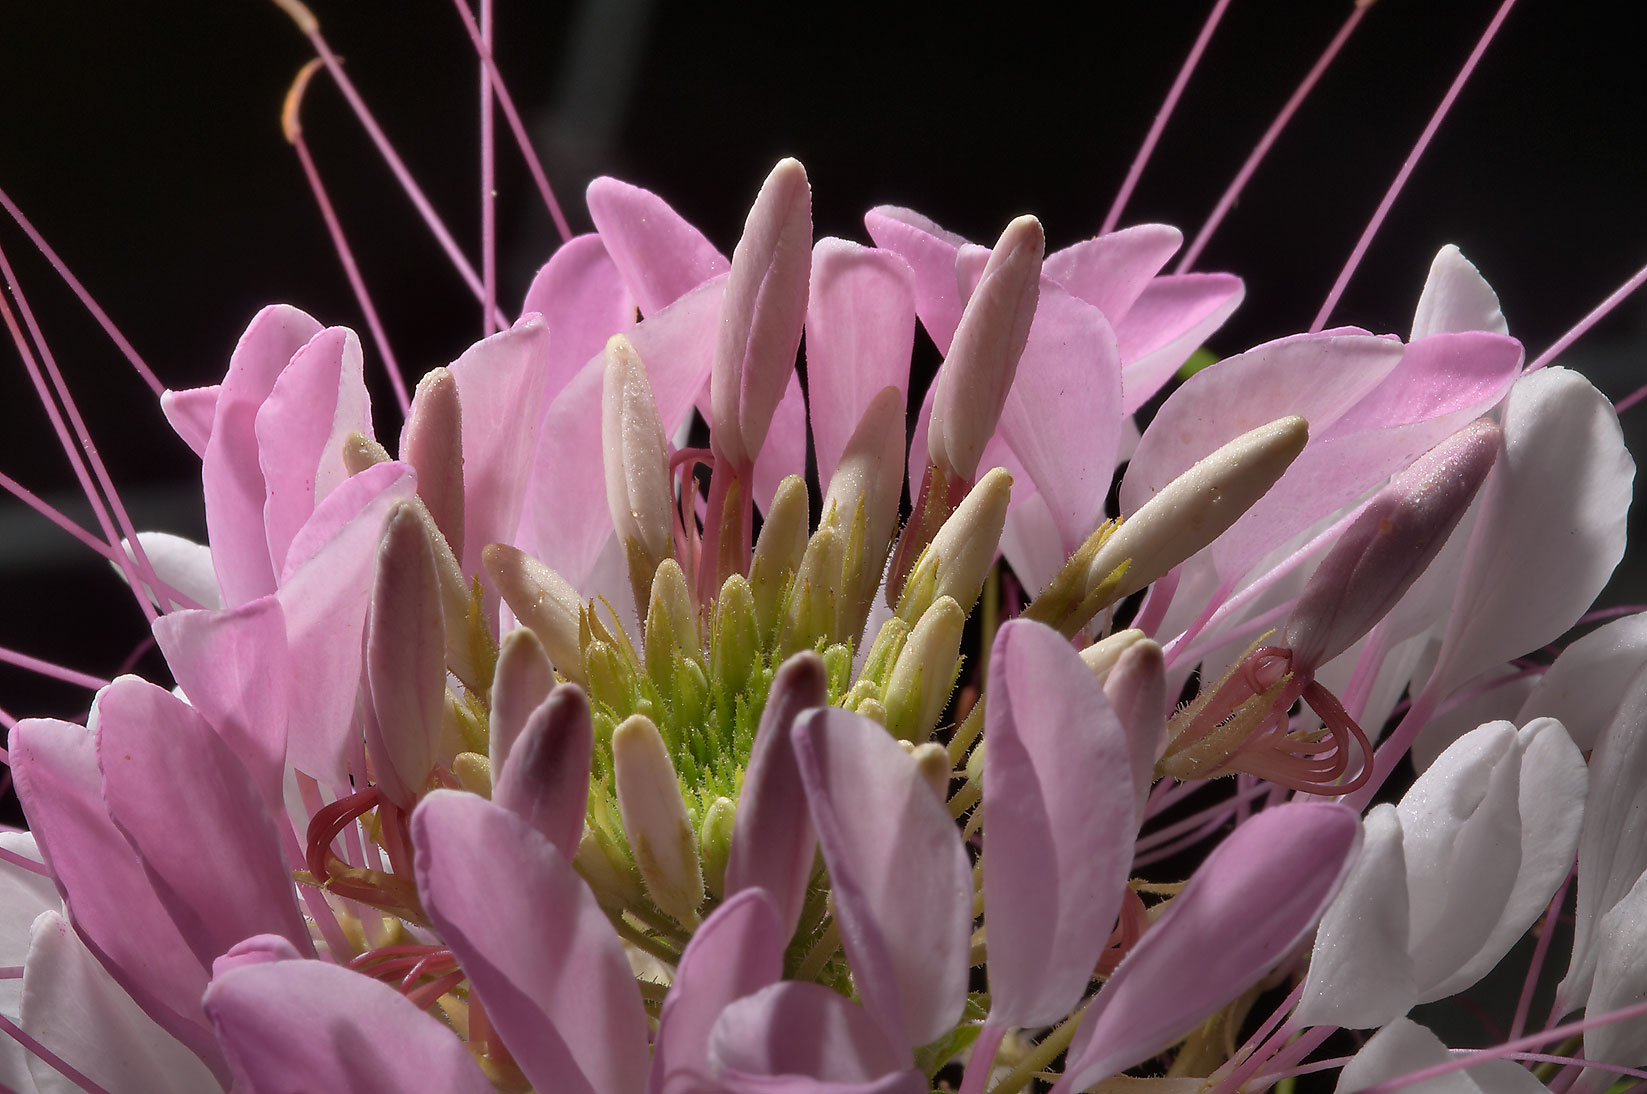 Spider flower (Cleome) in TAMU Horticultural...M University. College Station, Texas